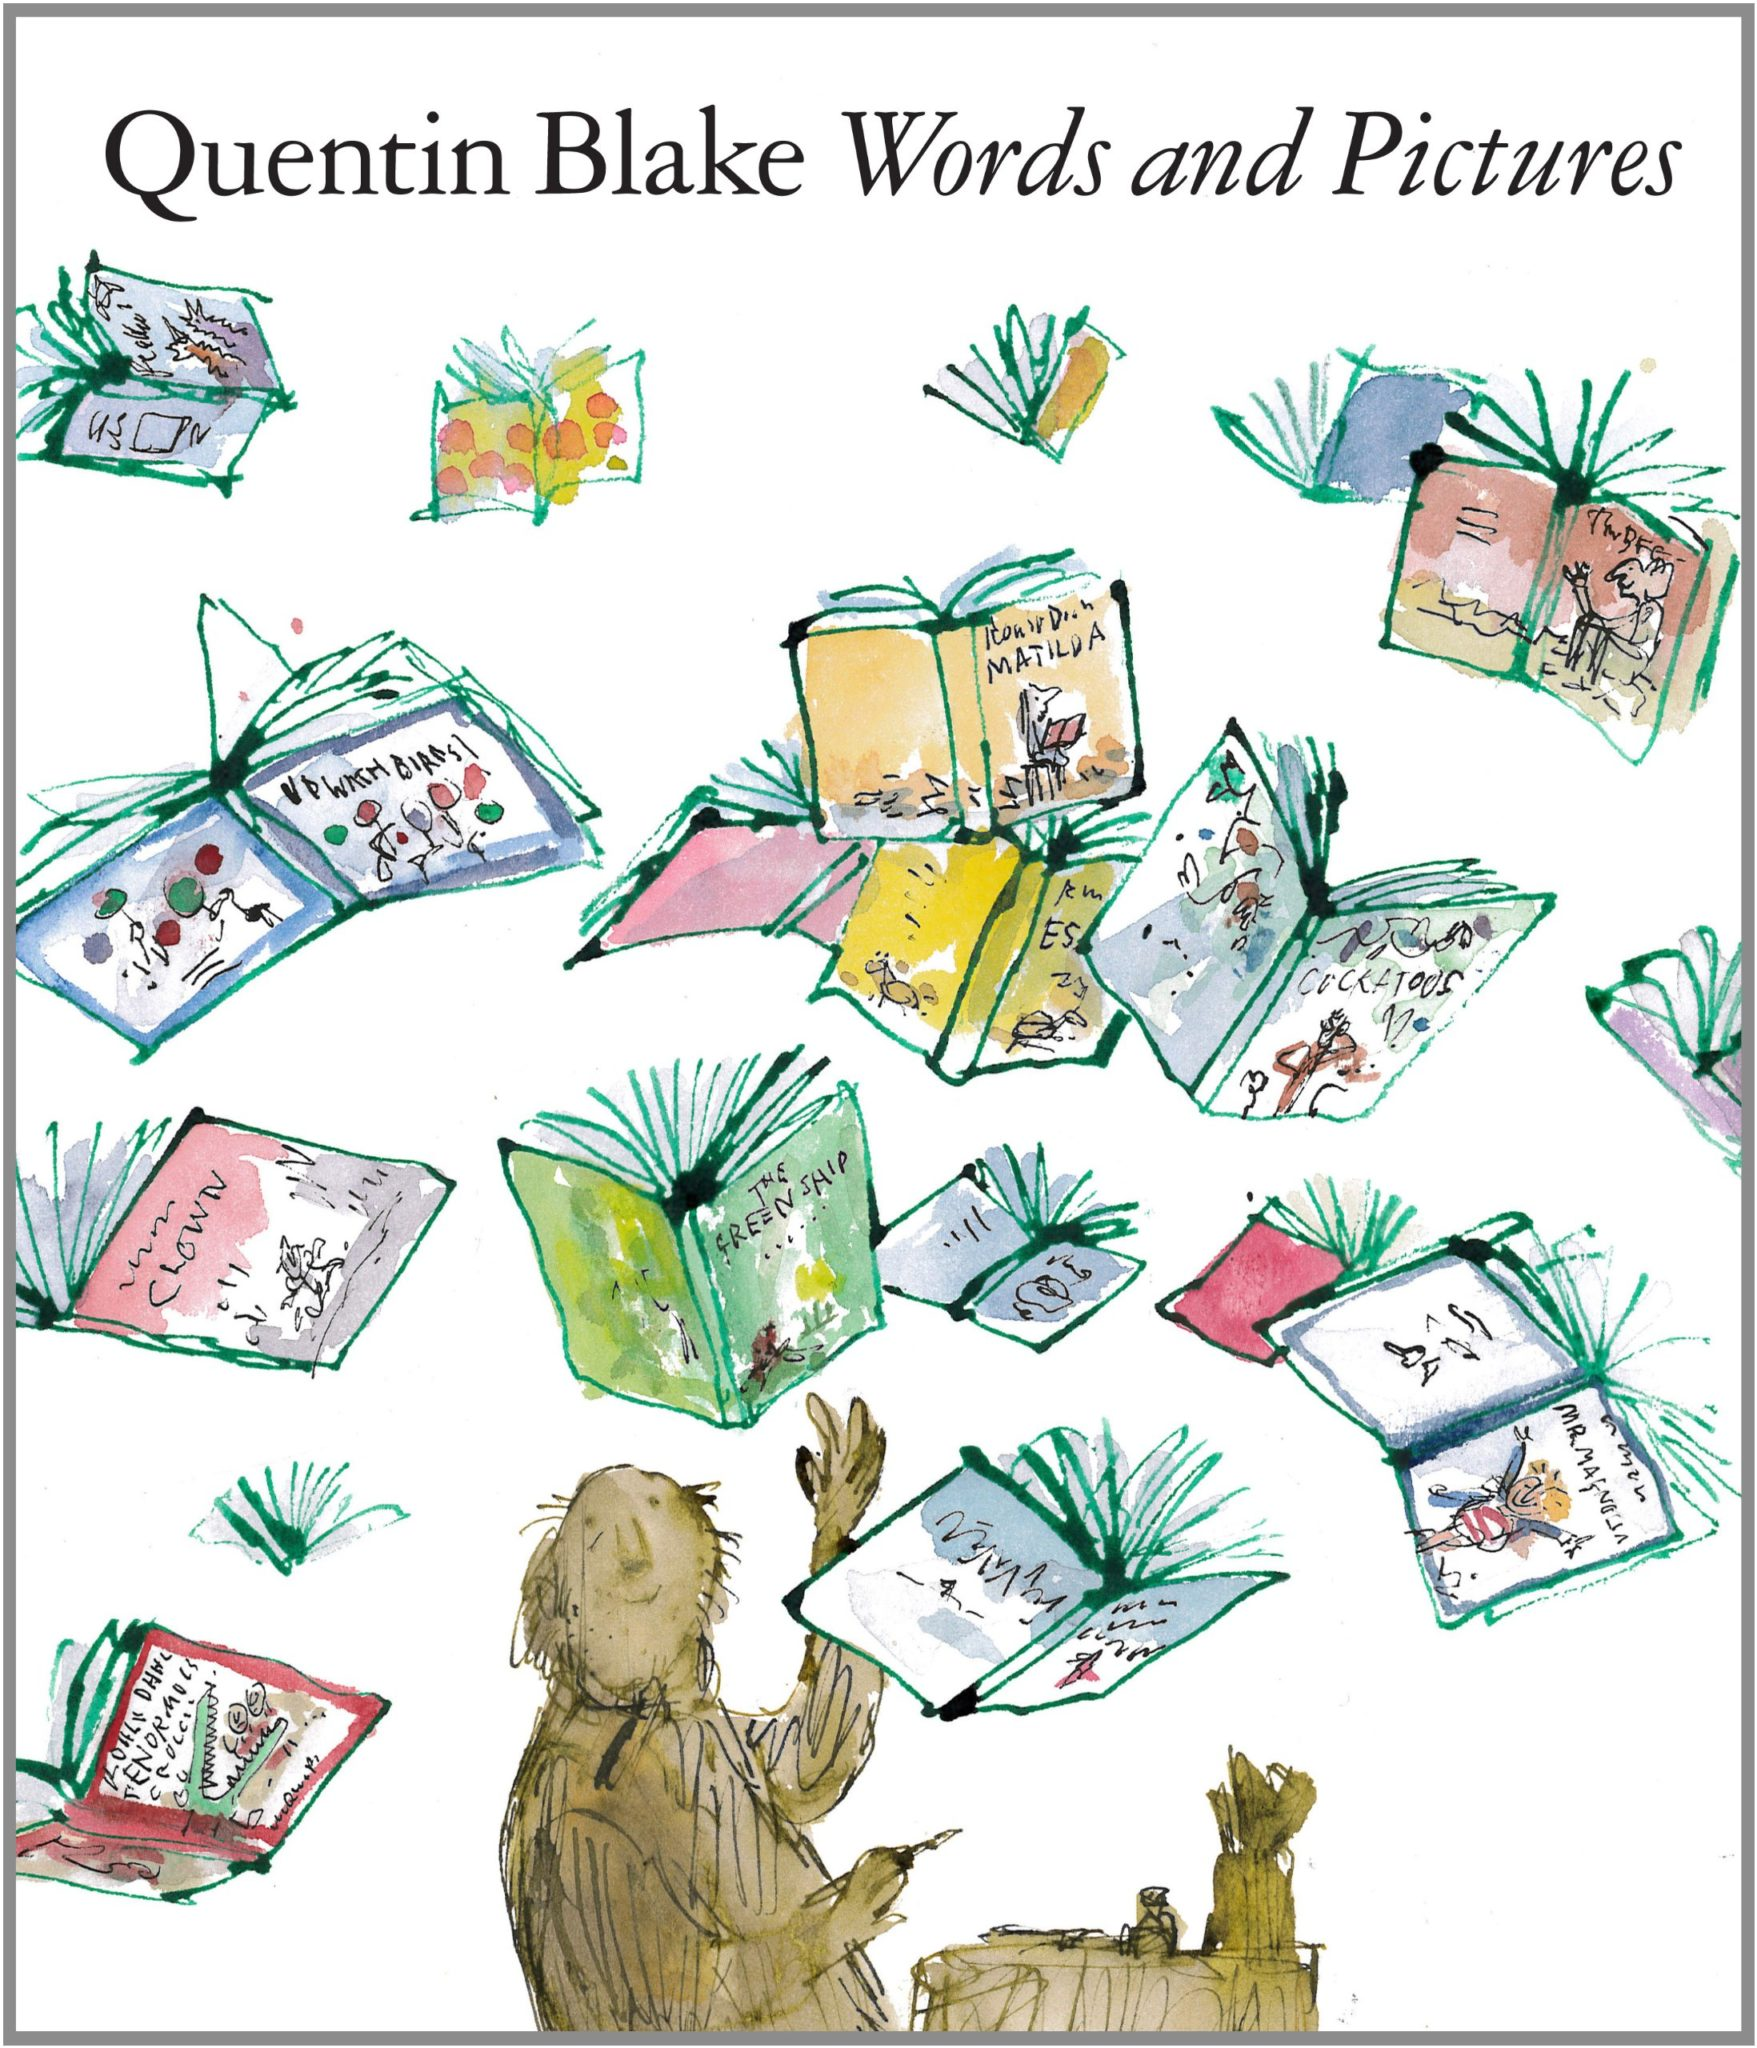 Words and Pictures: Quentin Blake